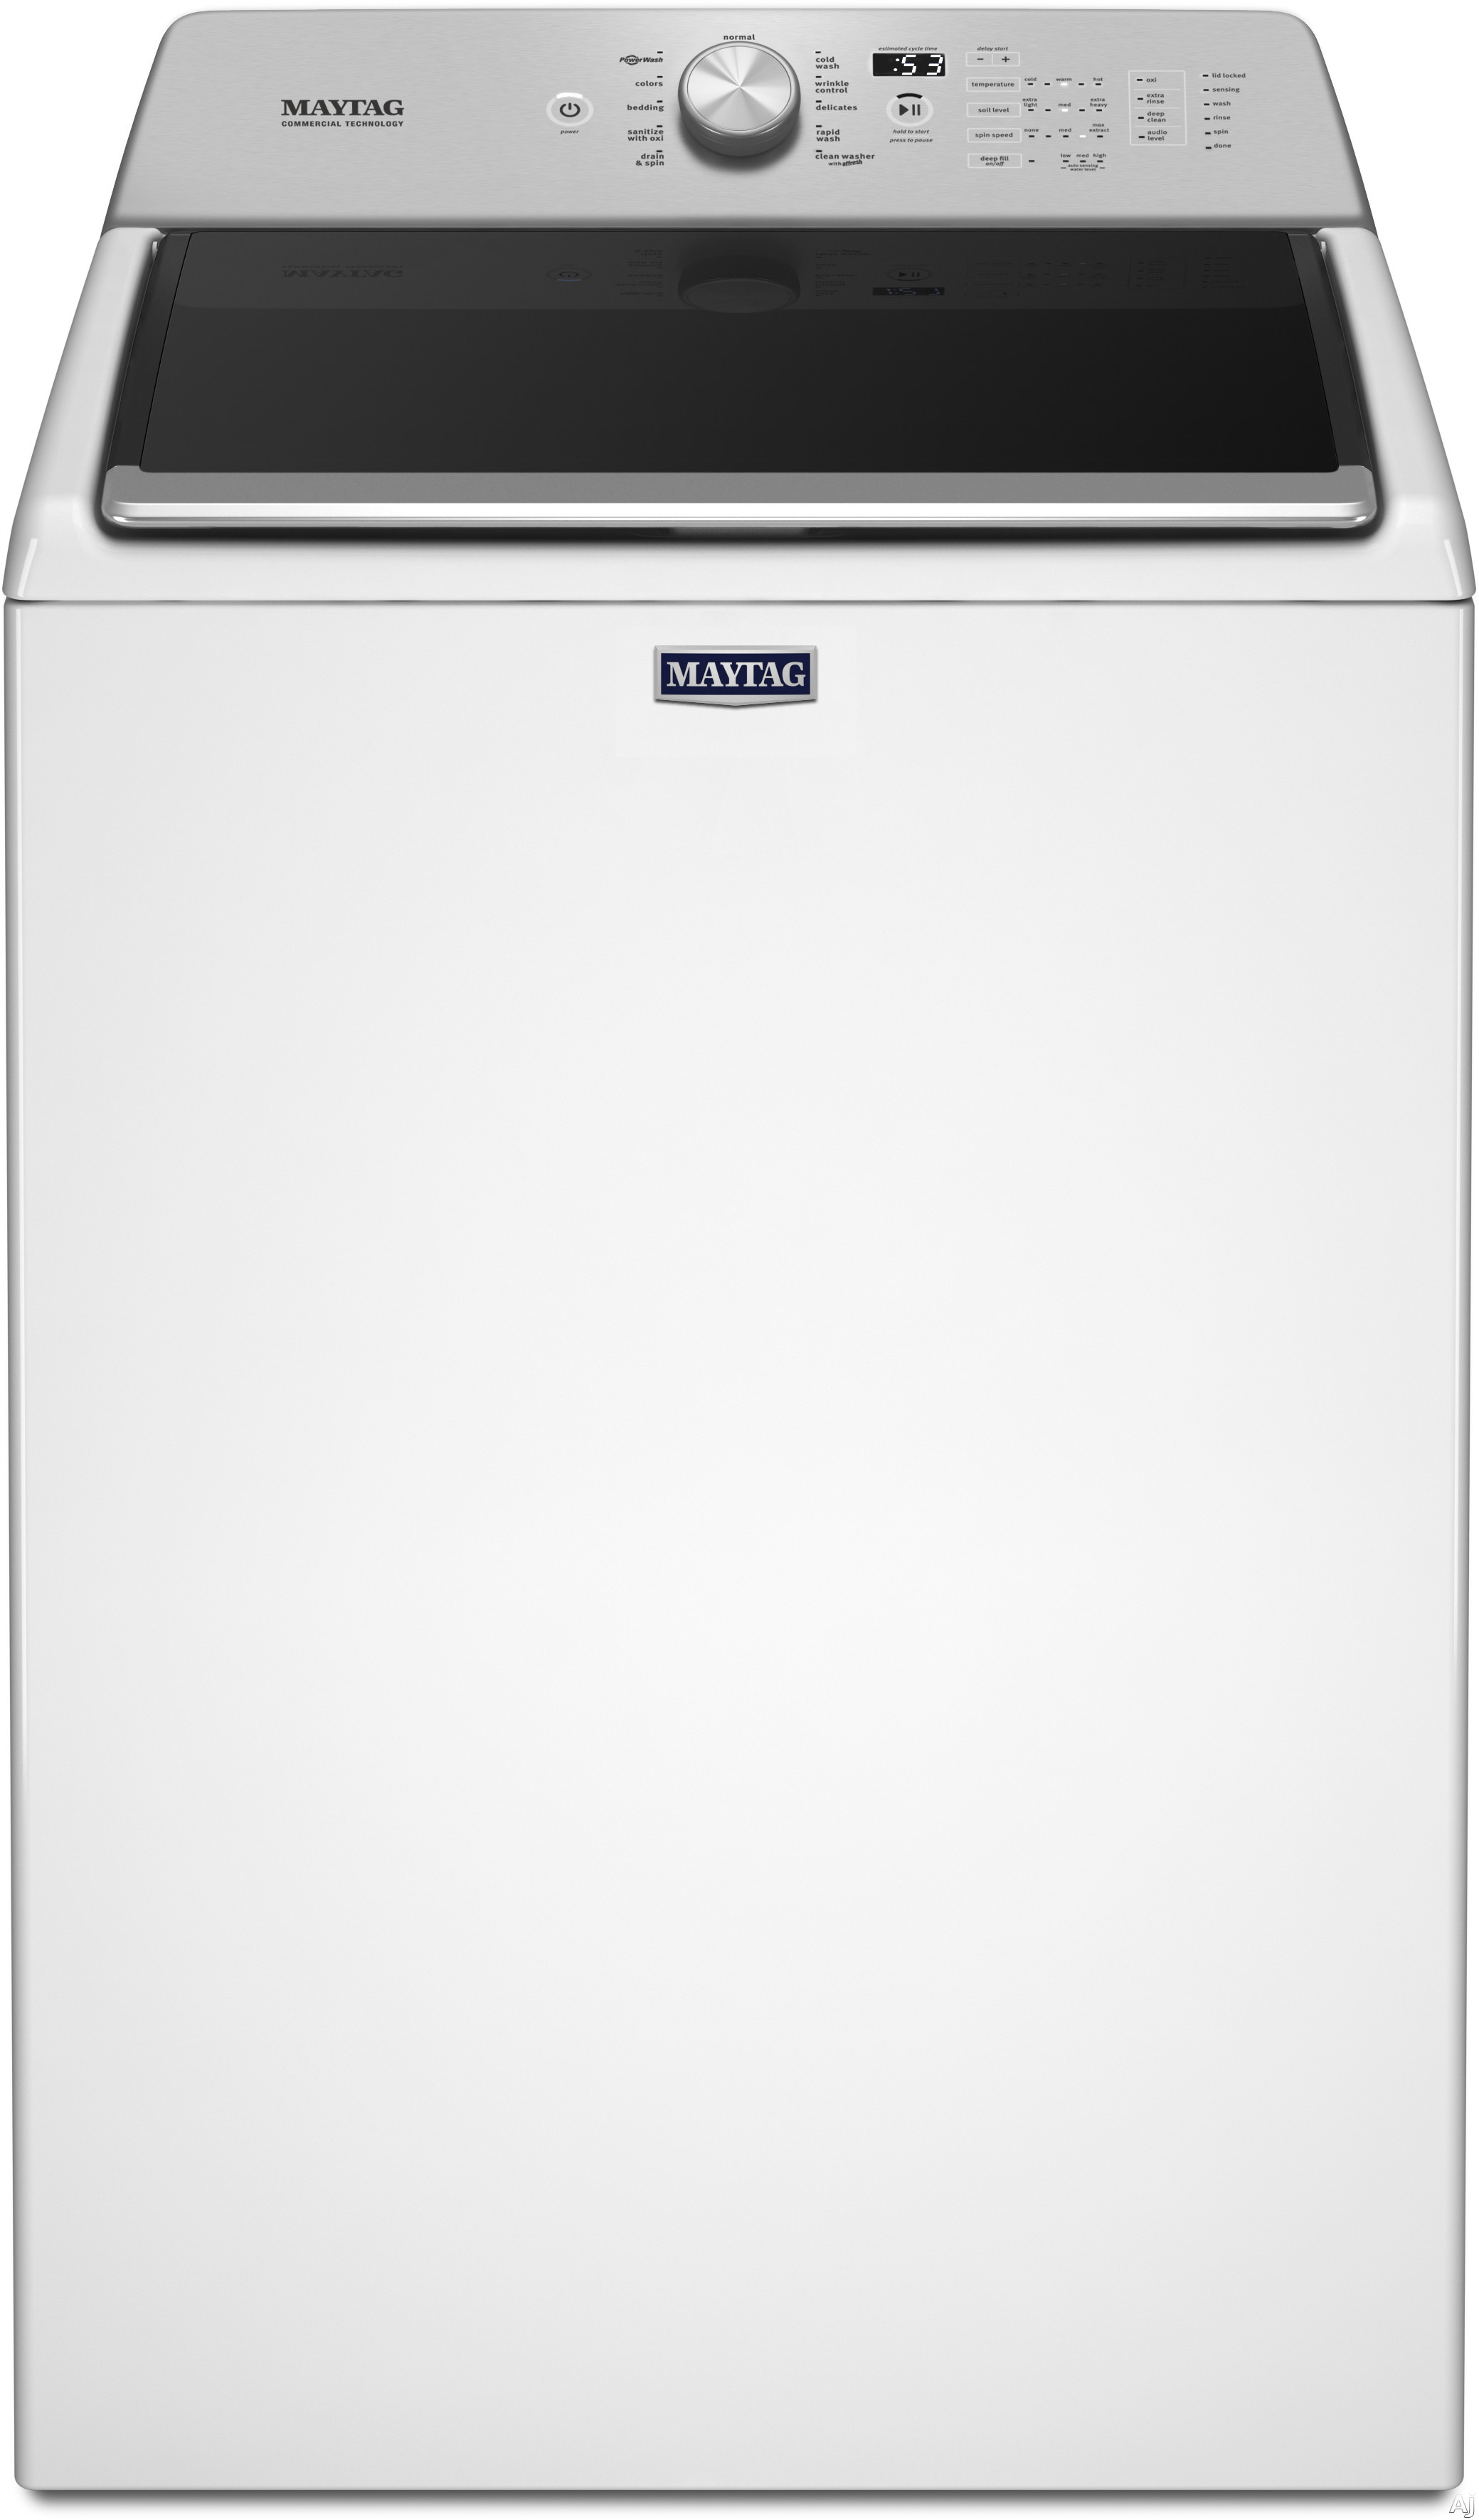 Maytag MVWB766FW 28 Inch Top Load Washer with 4.7 cu. ft. Capacity, 11 Wash Cycles, PowerWash Cycle, Sanitize with Oxi Cycle, Wrinkle Control, Deep Fill Option and Auto Sensing Option MVWB766FW